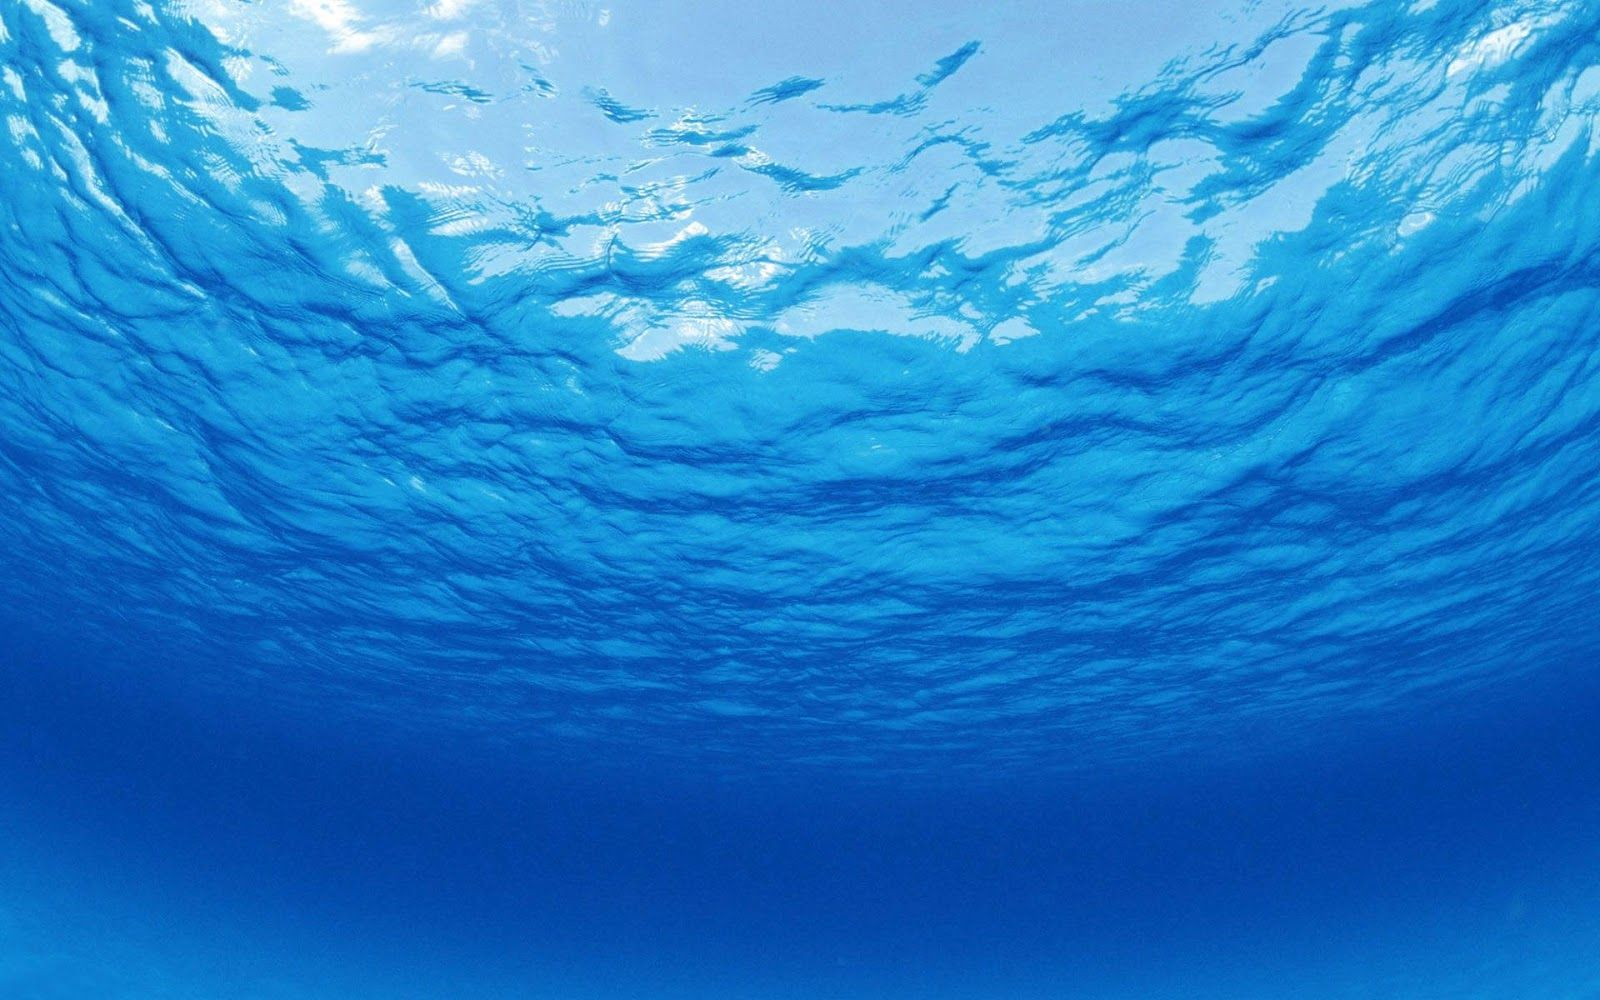 Under ocean background wallpaper wallpaper hd - Ocean pictures for desktop background ...